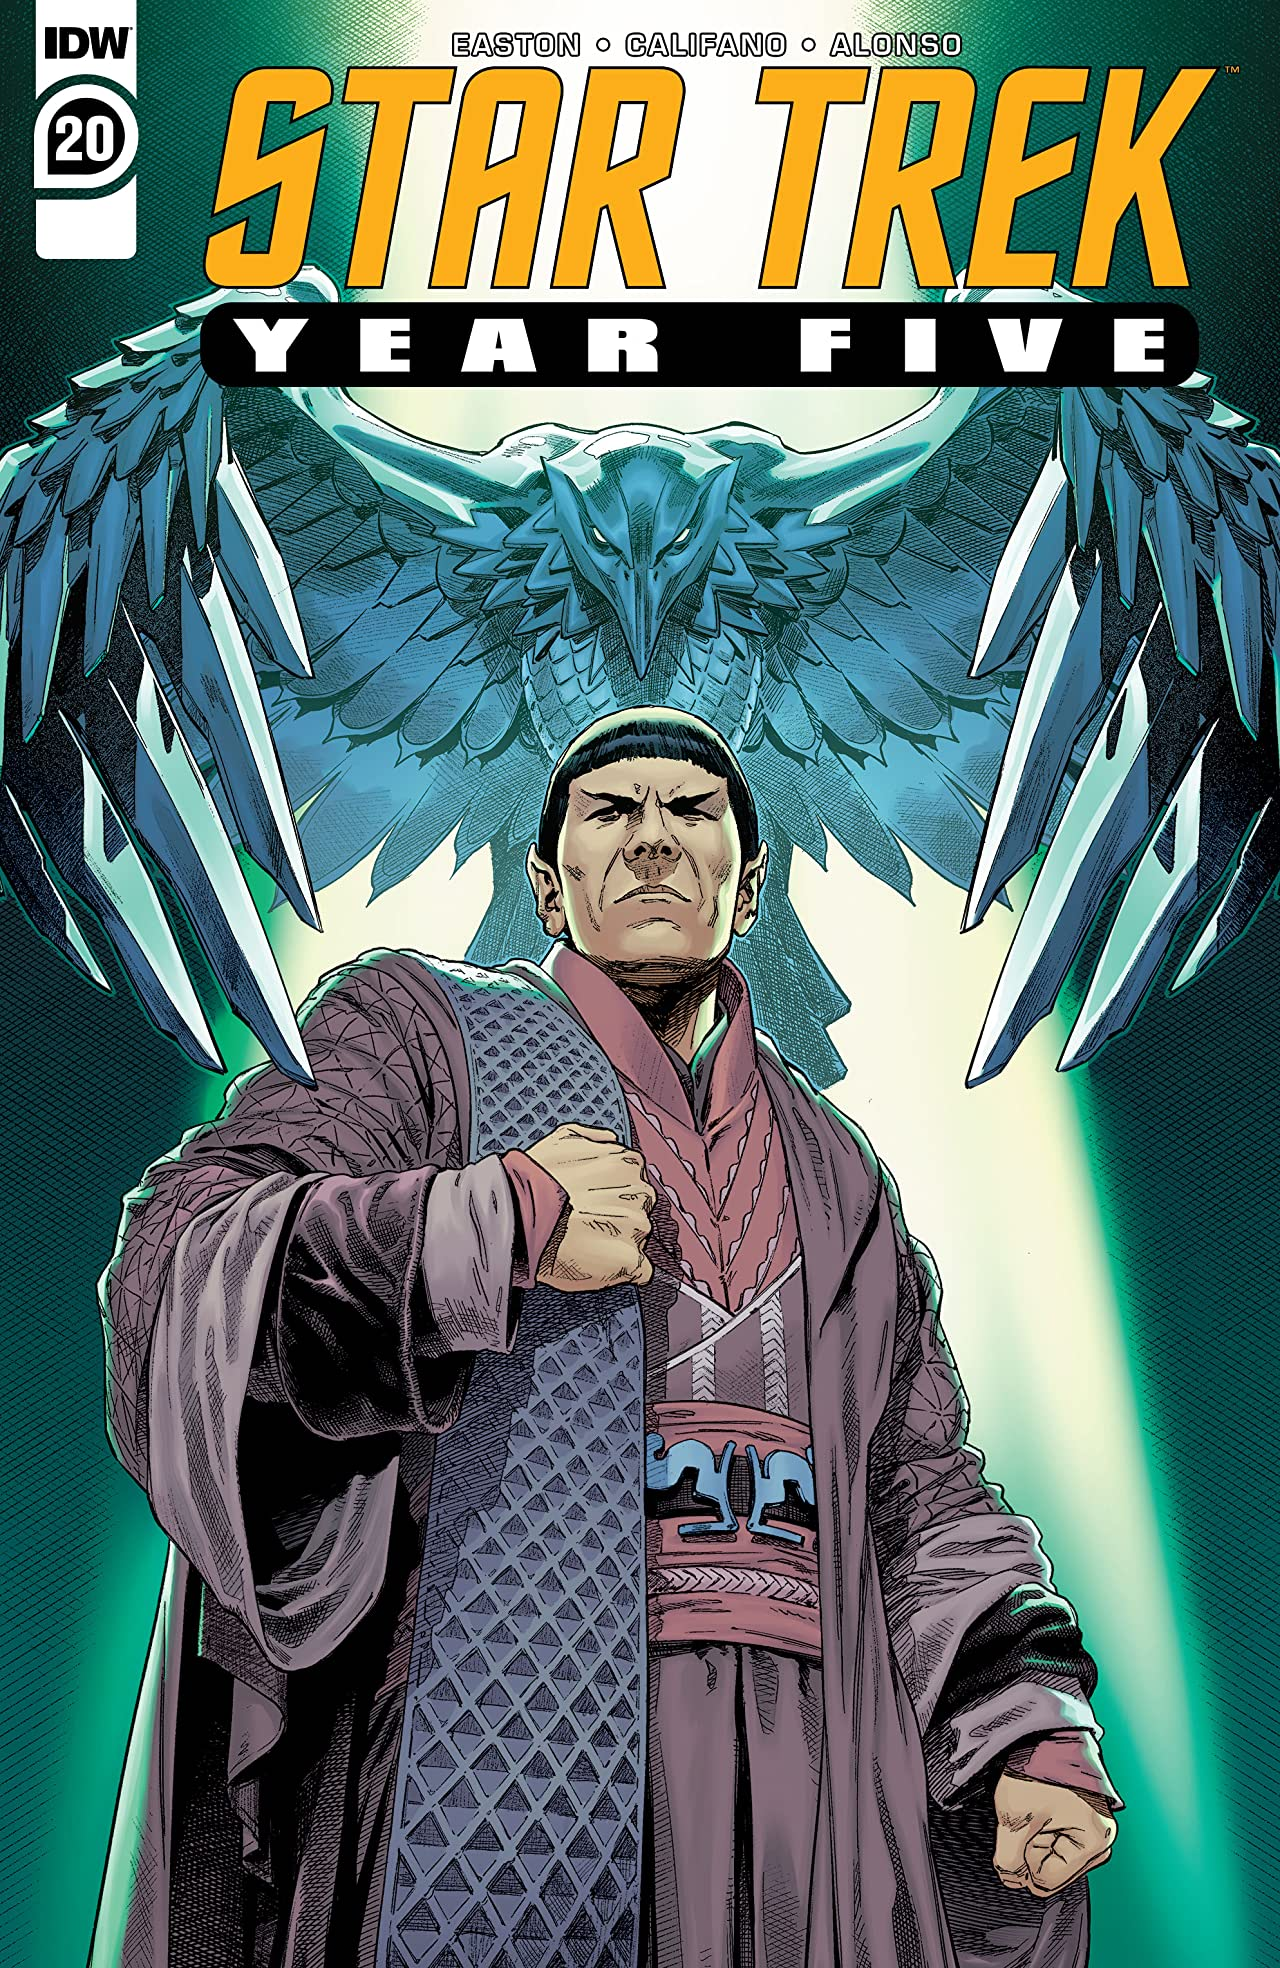 Star Trek: Year Five #20